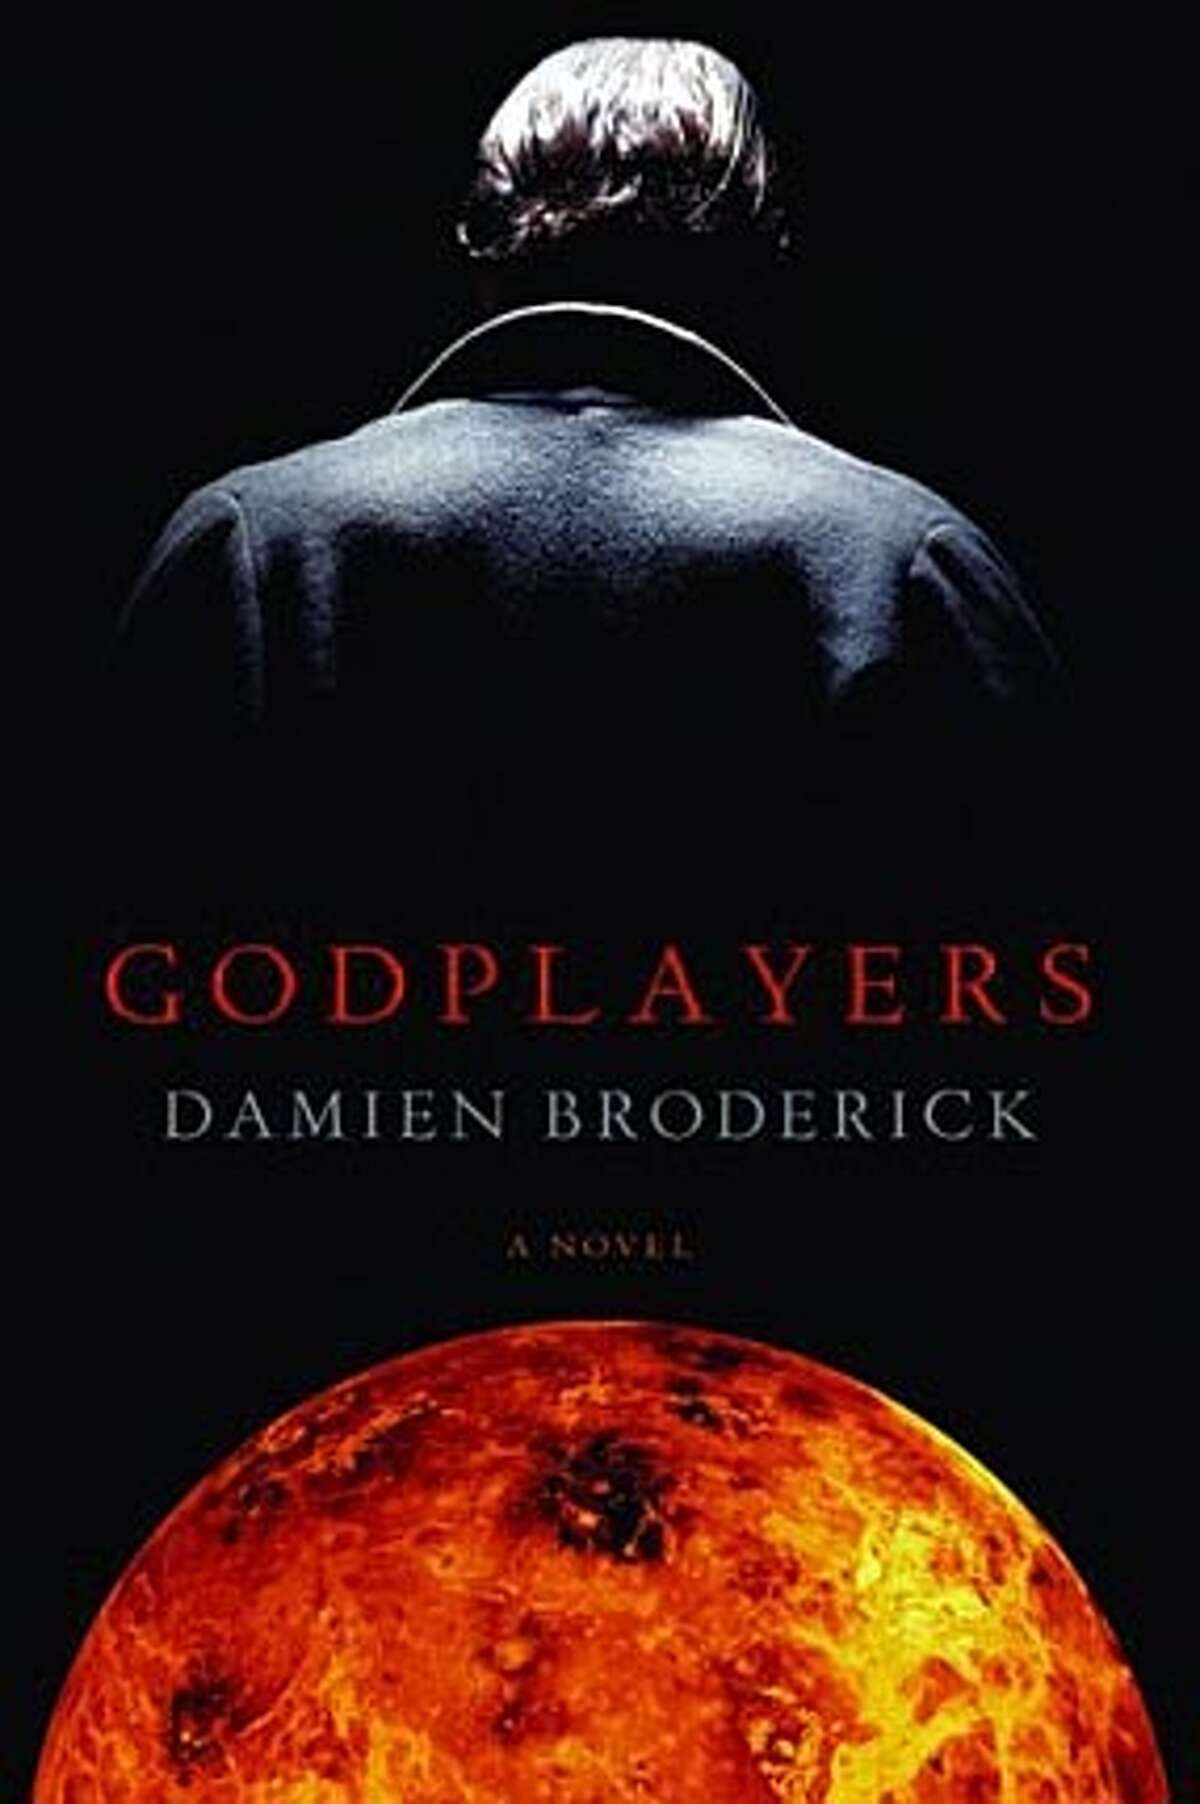 """Book cover art for, """"Godplayers: by Damien Broderick."""" BookReview#BookReview#Chronicle#06-05-2005#ALL#2star#e6#0422975903"""